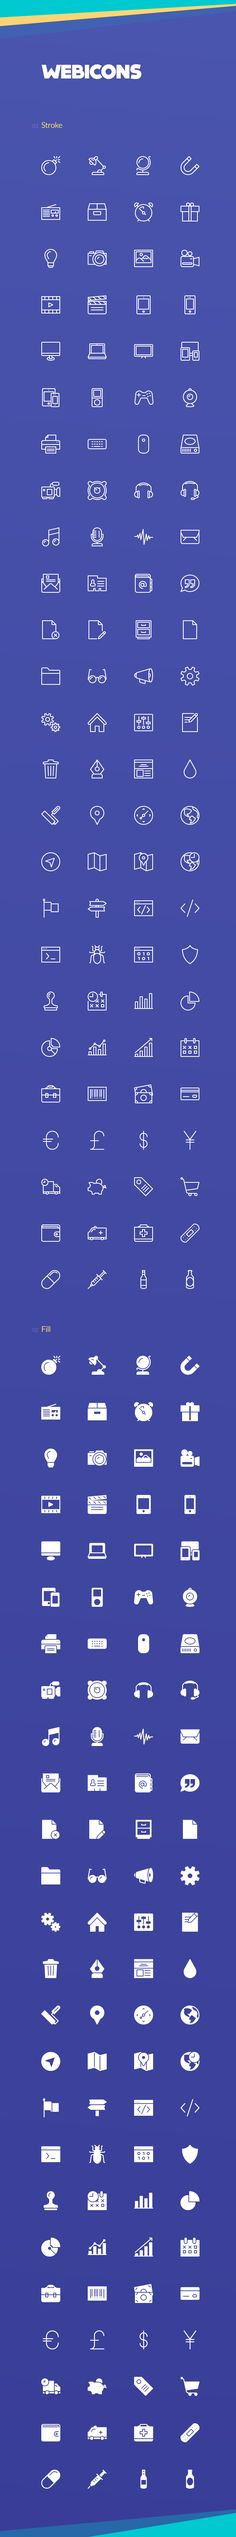 Webicons – 100 Stroke & Fill Icons | GraphicBurger